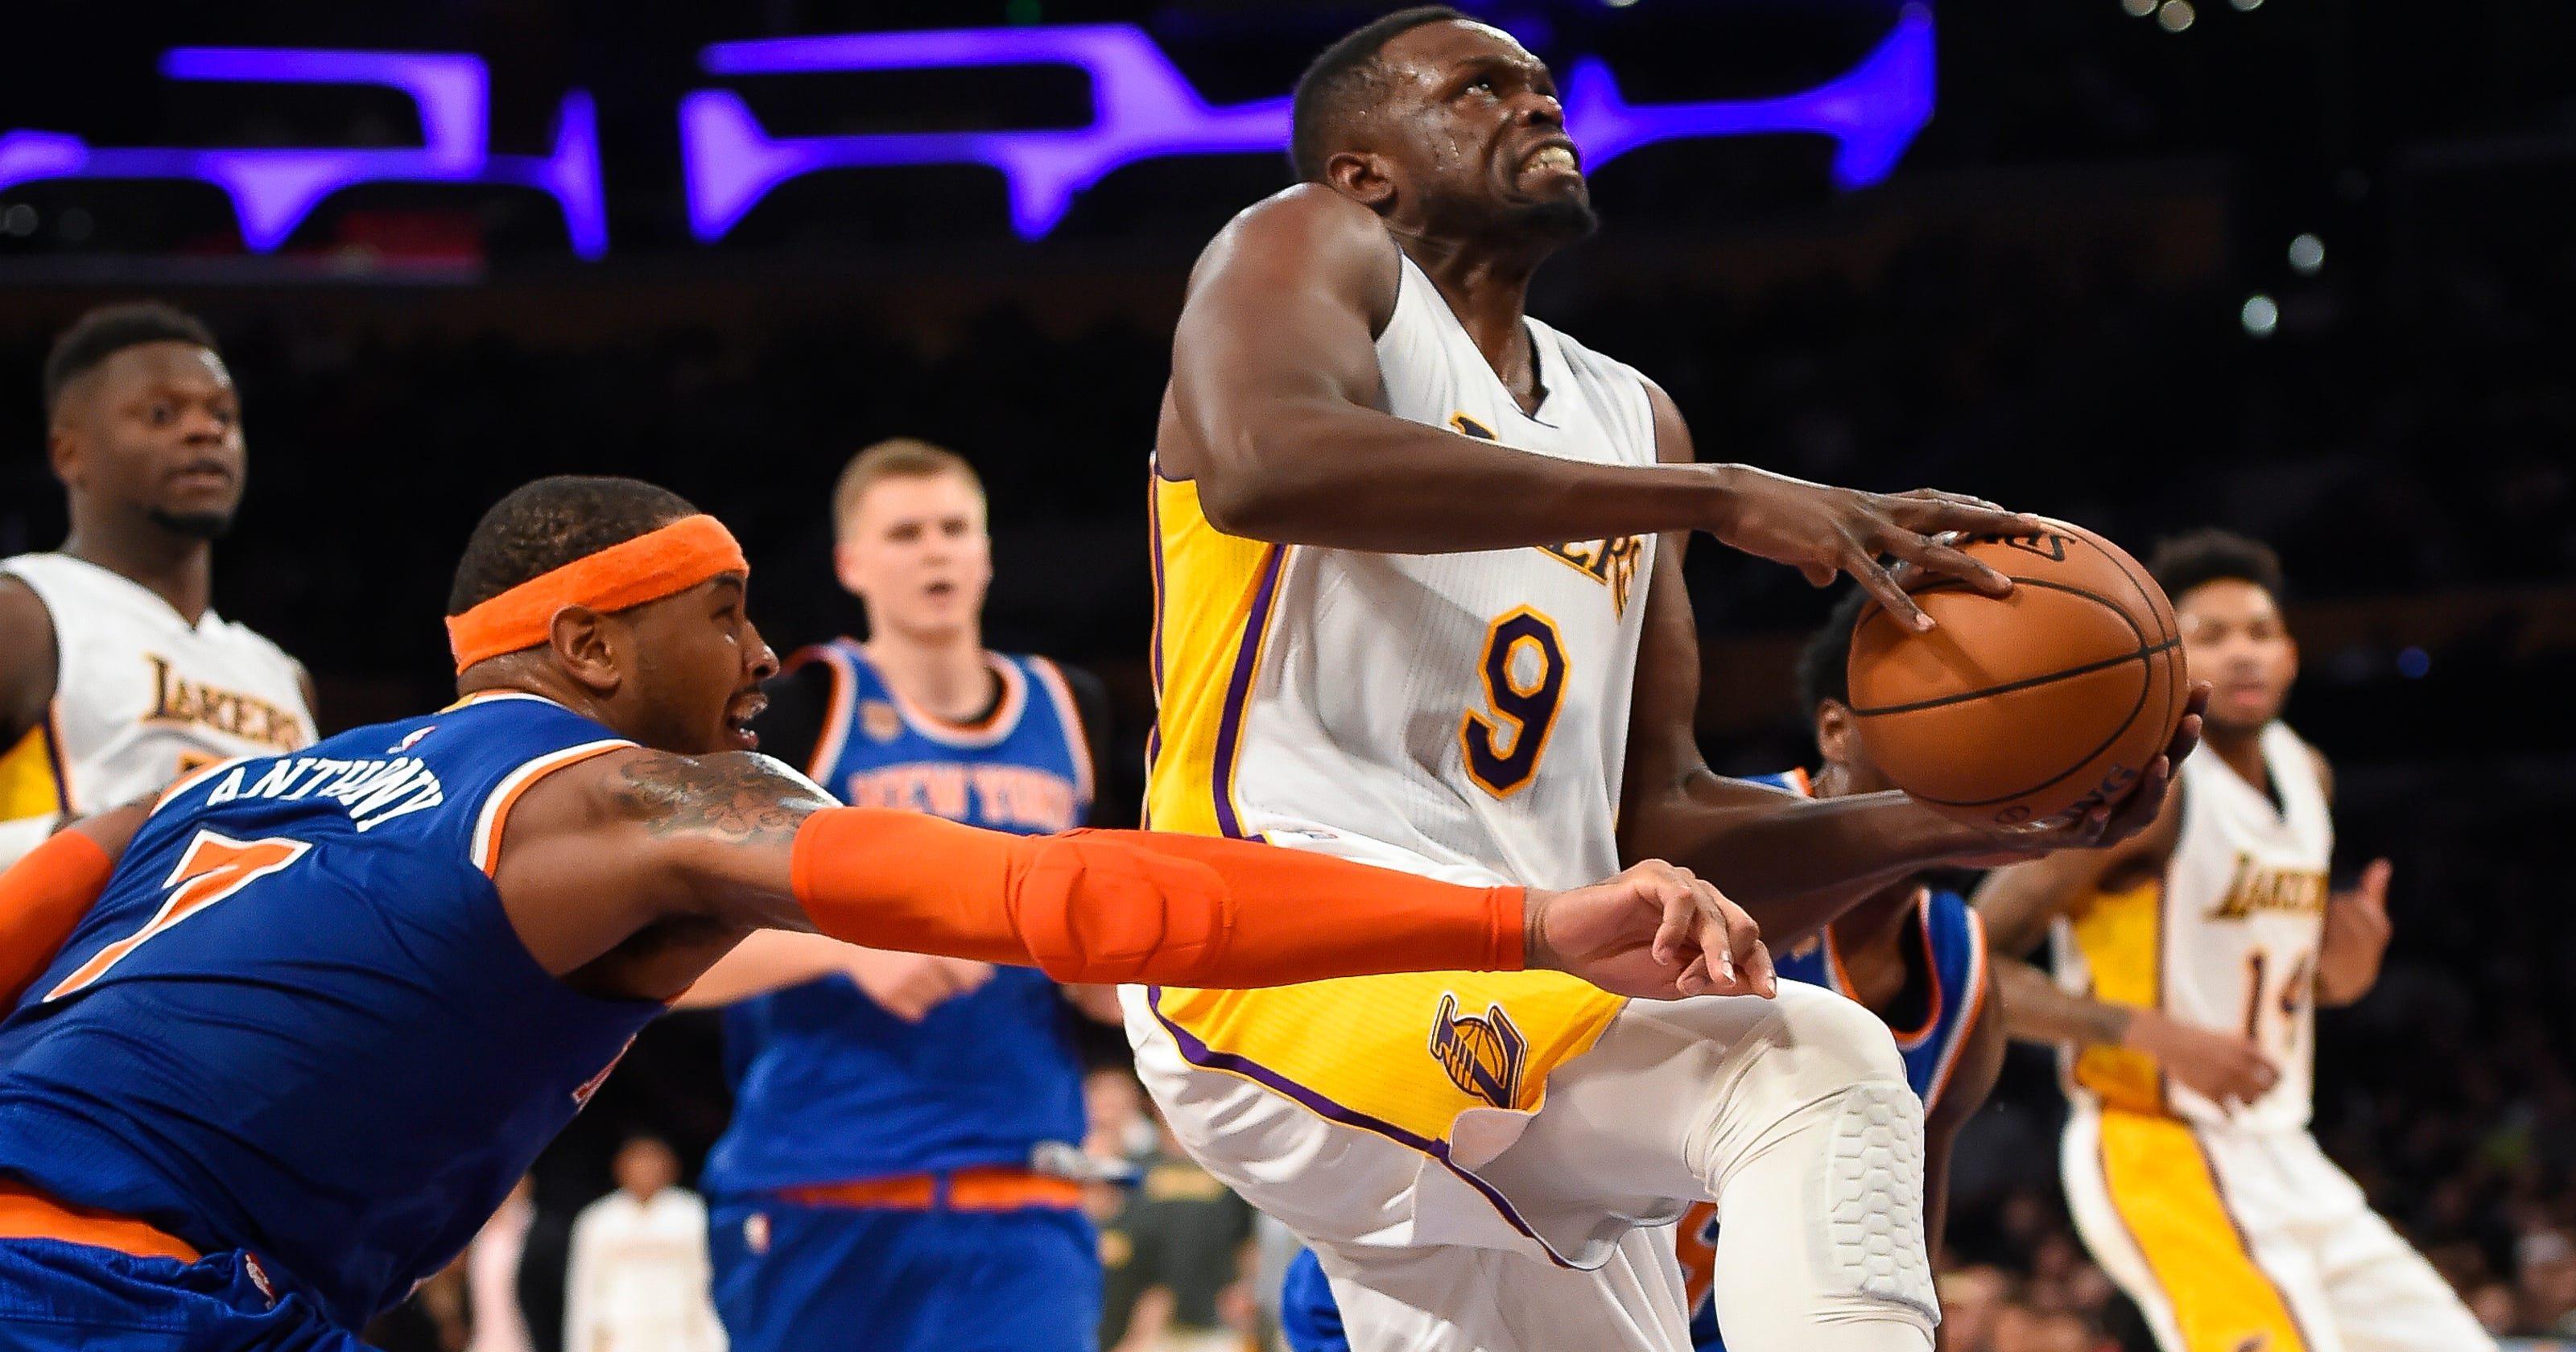 cf64d07b71e Lakers waive F Luol Deng midway through $72 million deal